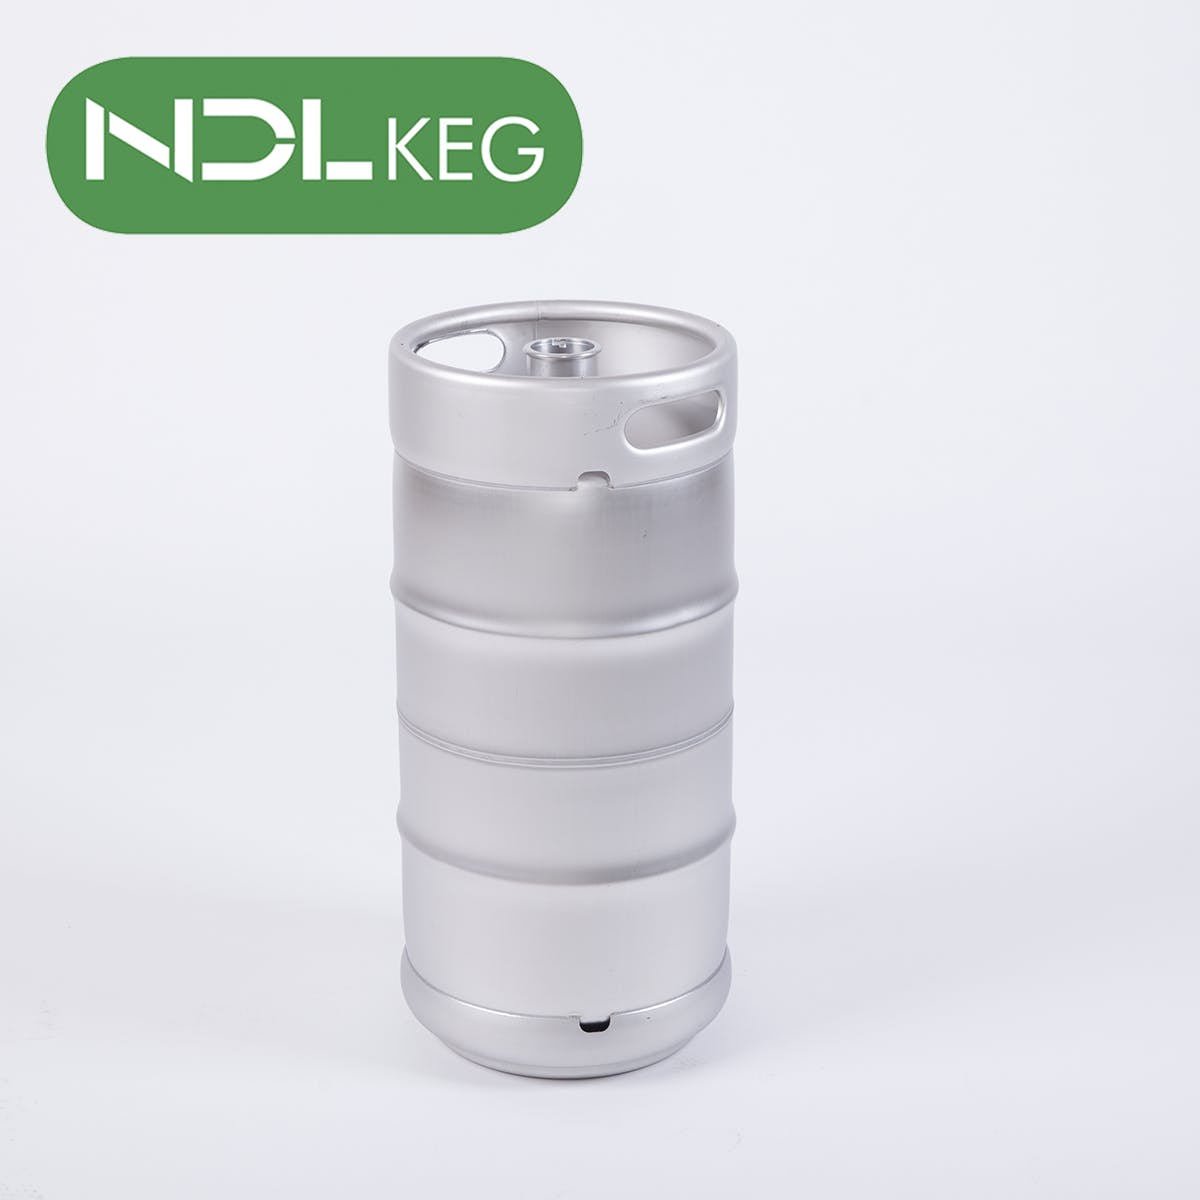 US 1/4 Barrel Stackable Keg sold by NDL Keg